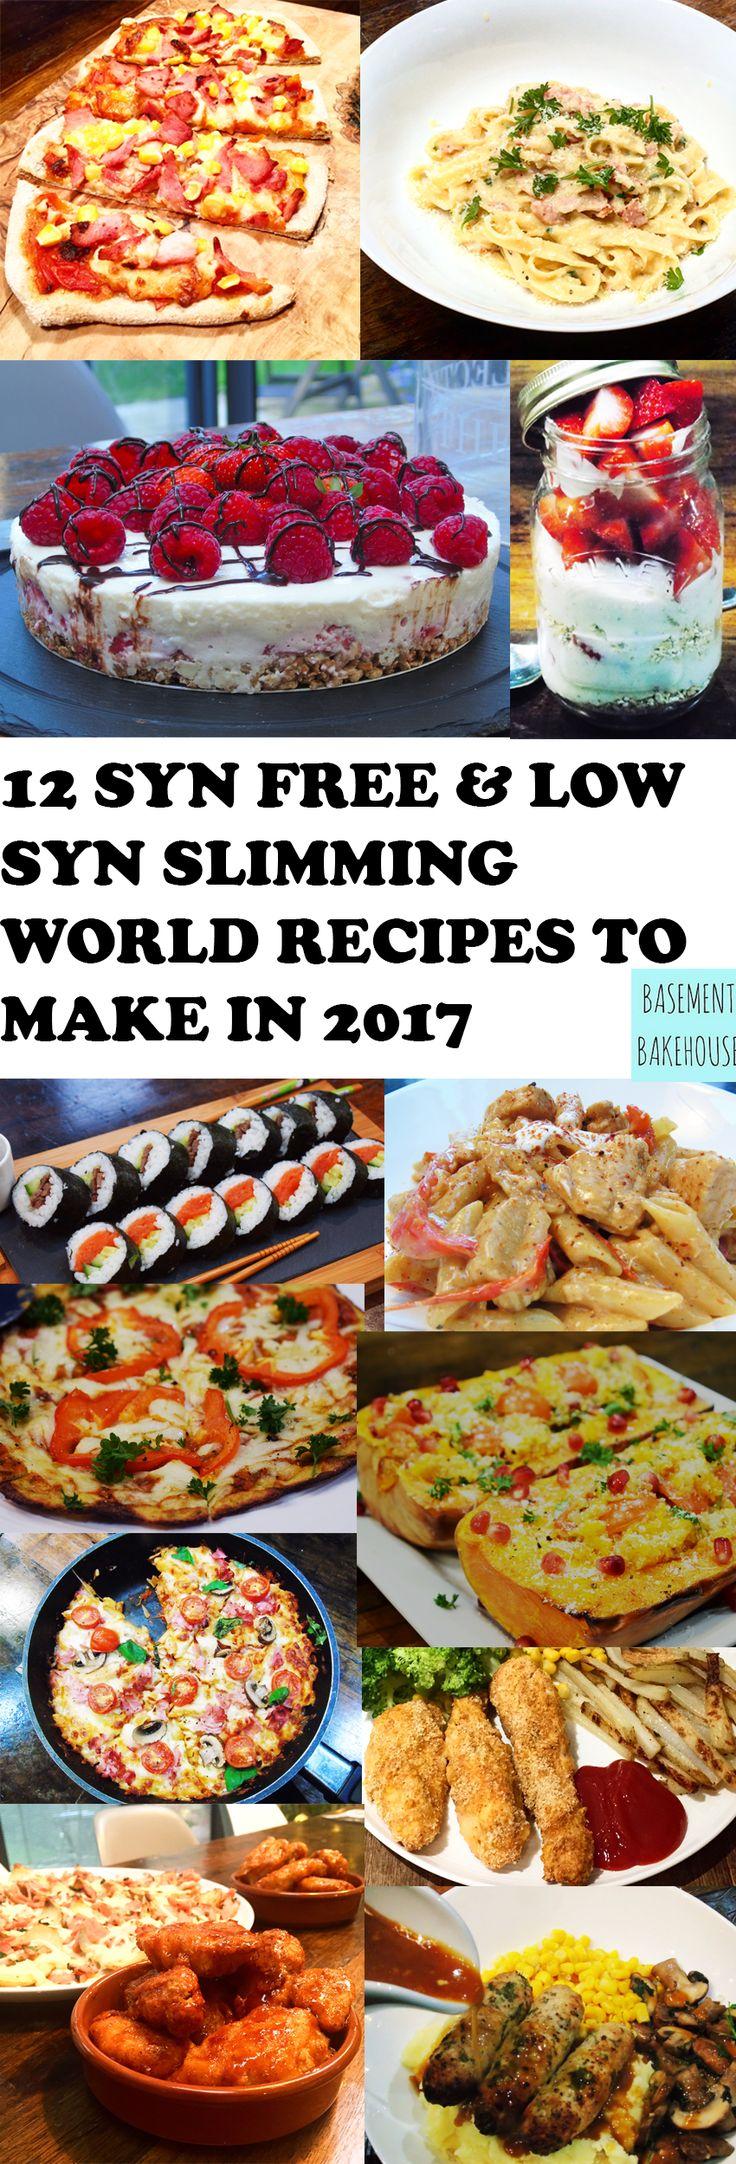 12 Syn Free Low Syn Recipes To Make In 2017